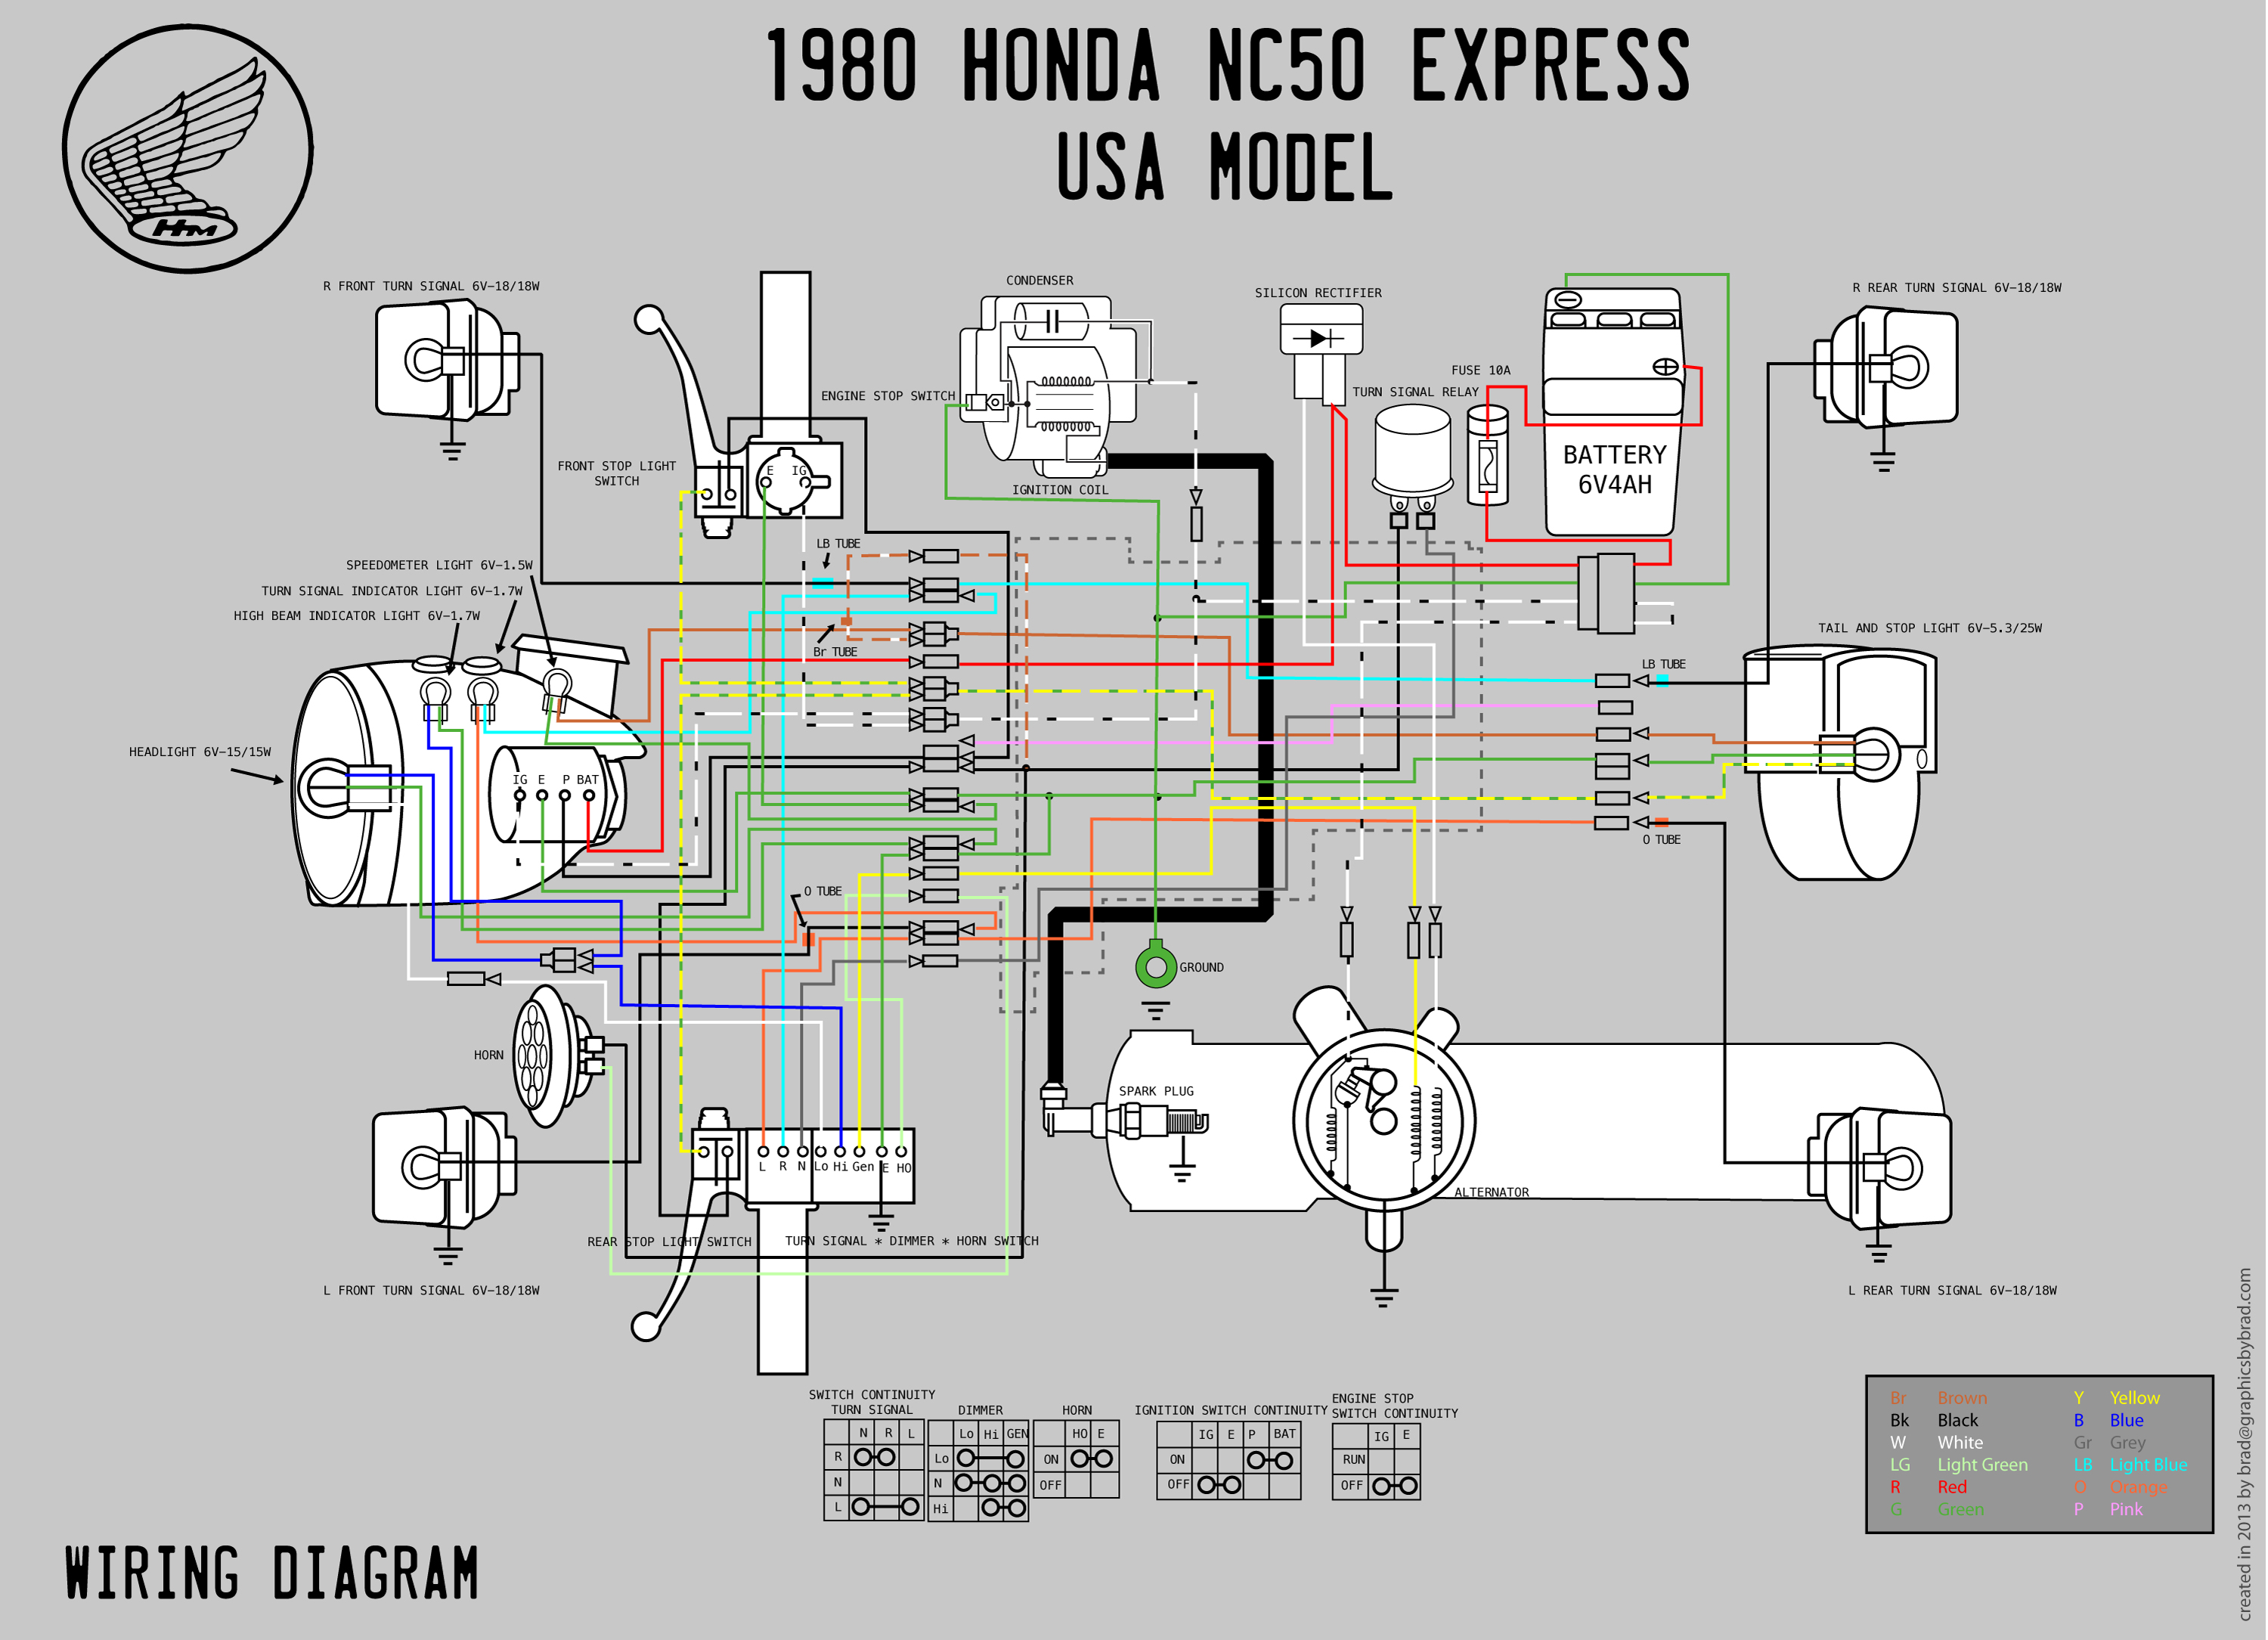 1980 nc50 wiring lrg 1980 honda express wiring diagram 1980 wiring diagrams collection tg1 express wiring diagram at pacquiaovsvargaslive.co